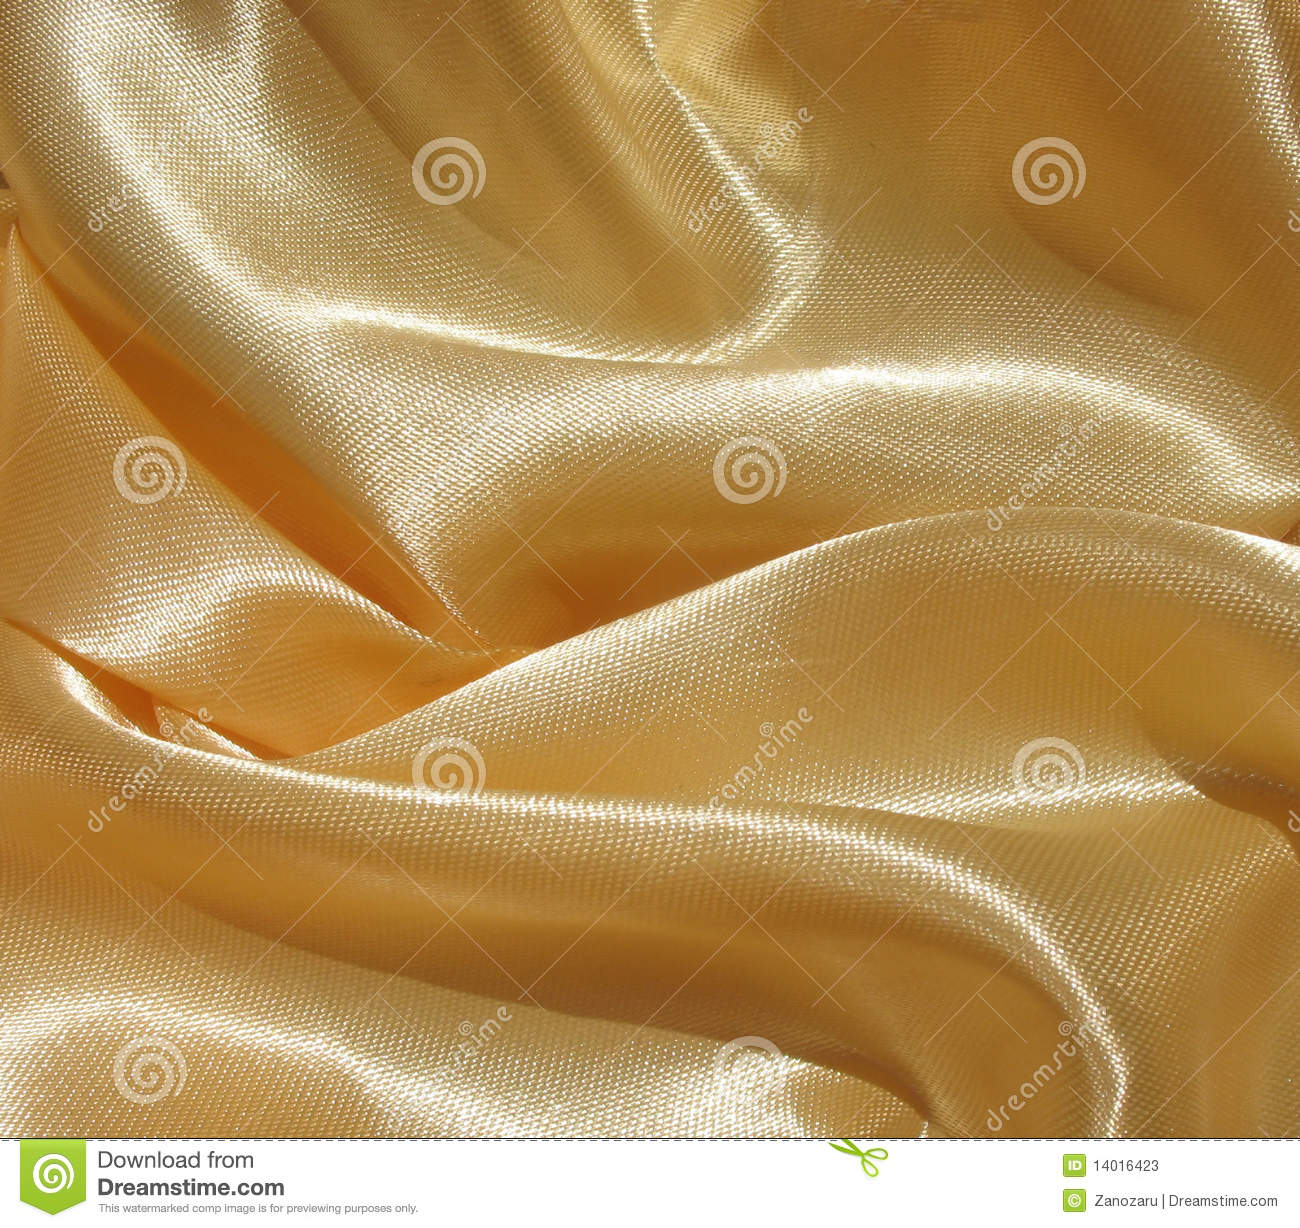 The Folds Of Silk Fabric Stock Photos - Image: 14016423